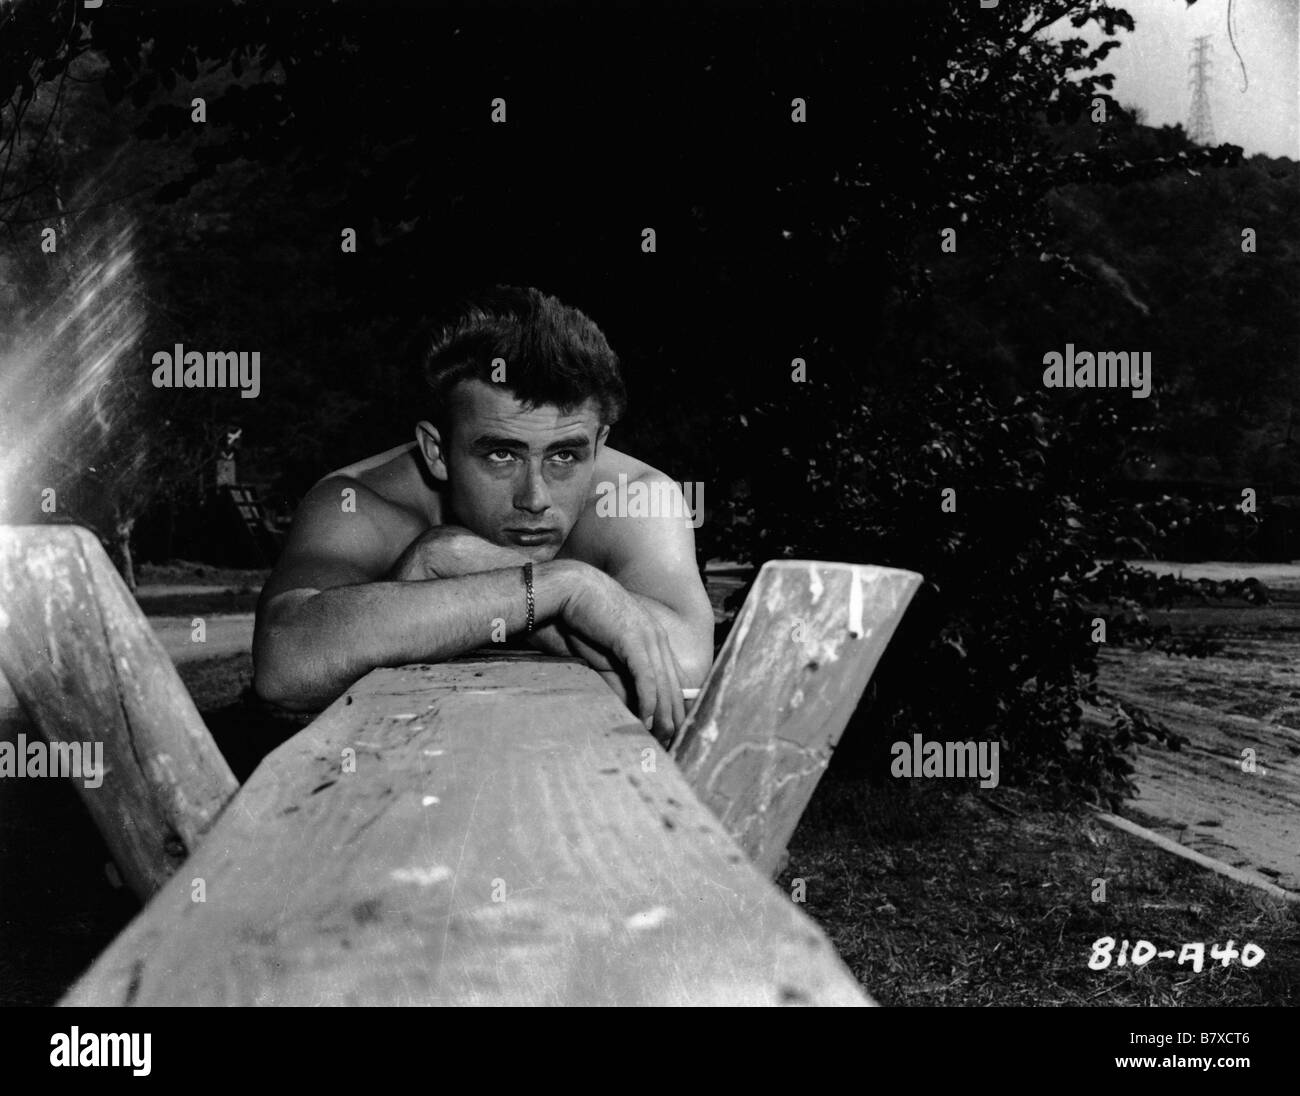 James Dean James Dean Date of birth 8 February 1931 Marion, Indiana